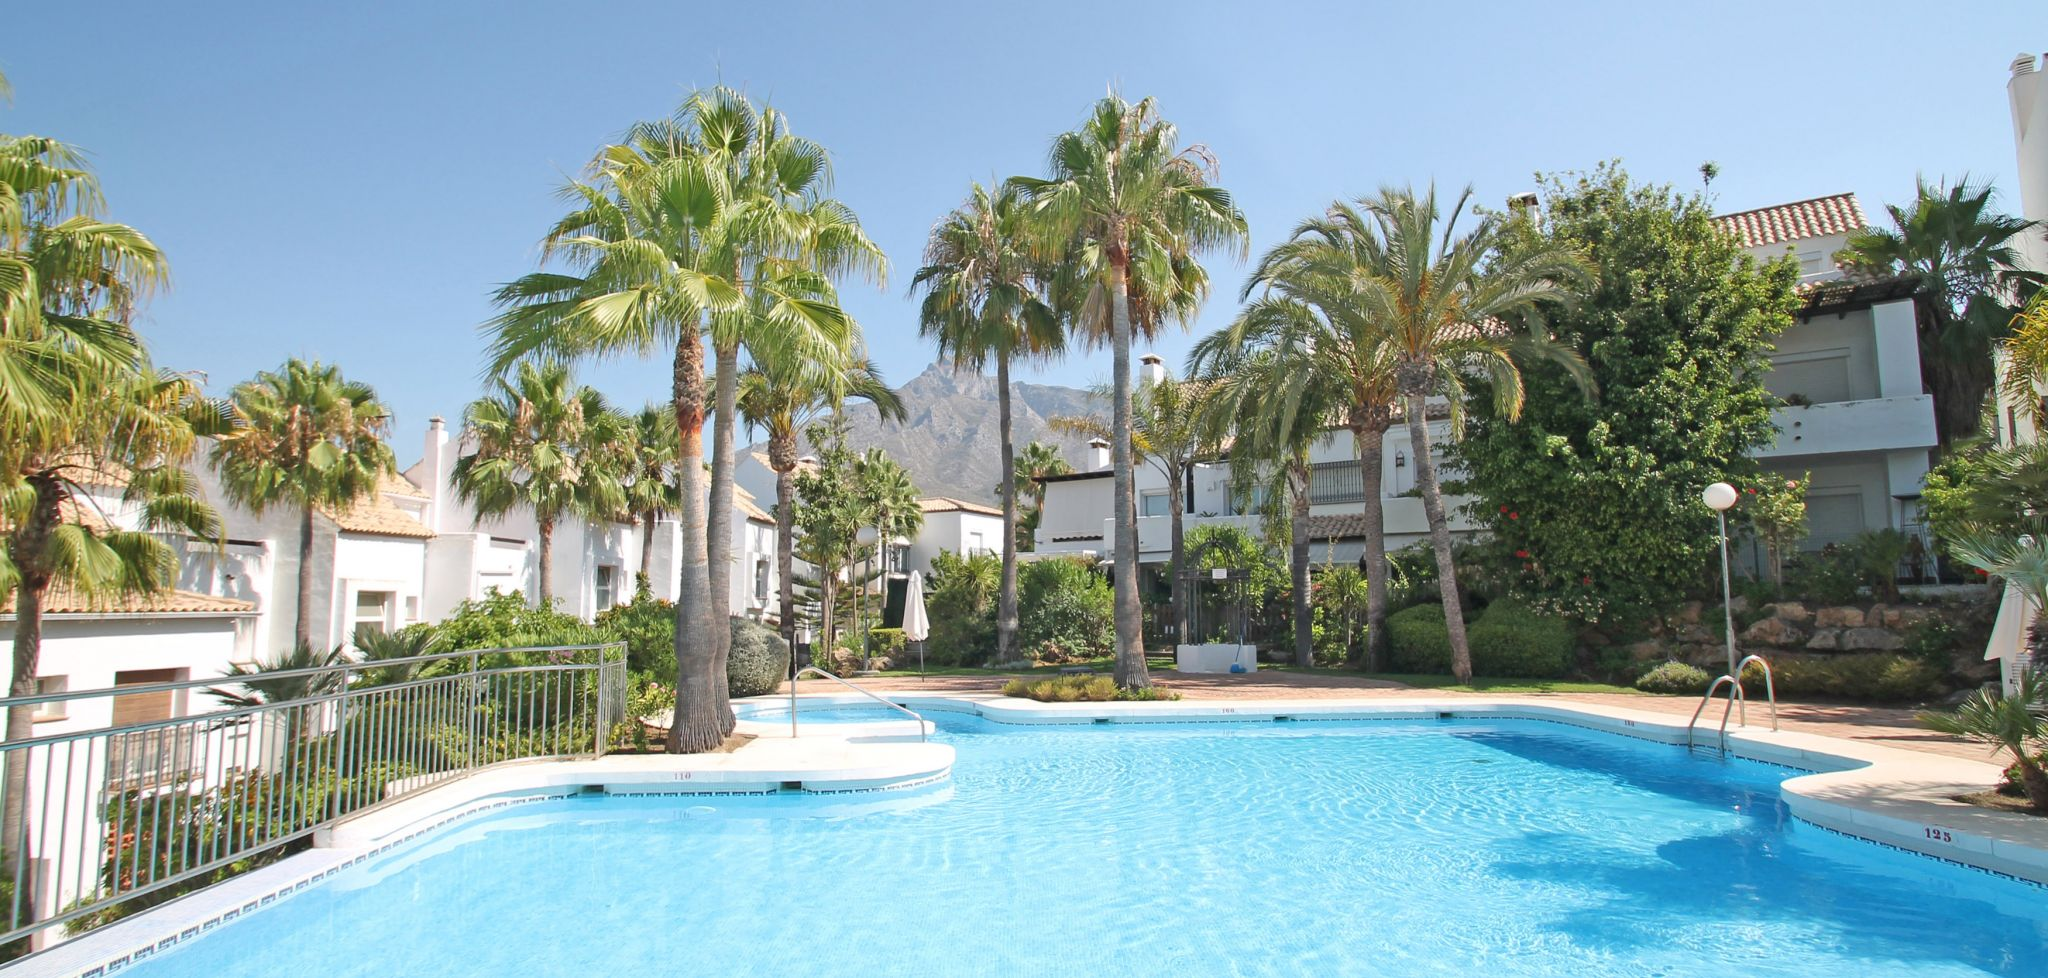 Four bedroom townhouse in a tranquil area on Marbella's Golden Mile